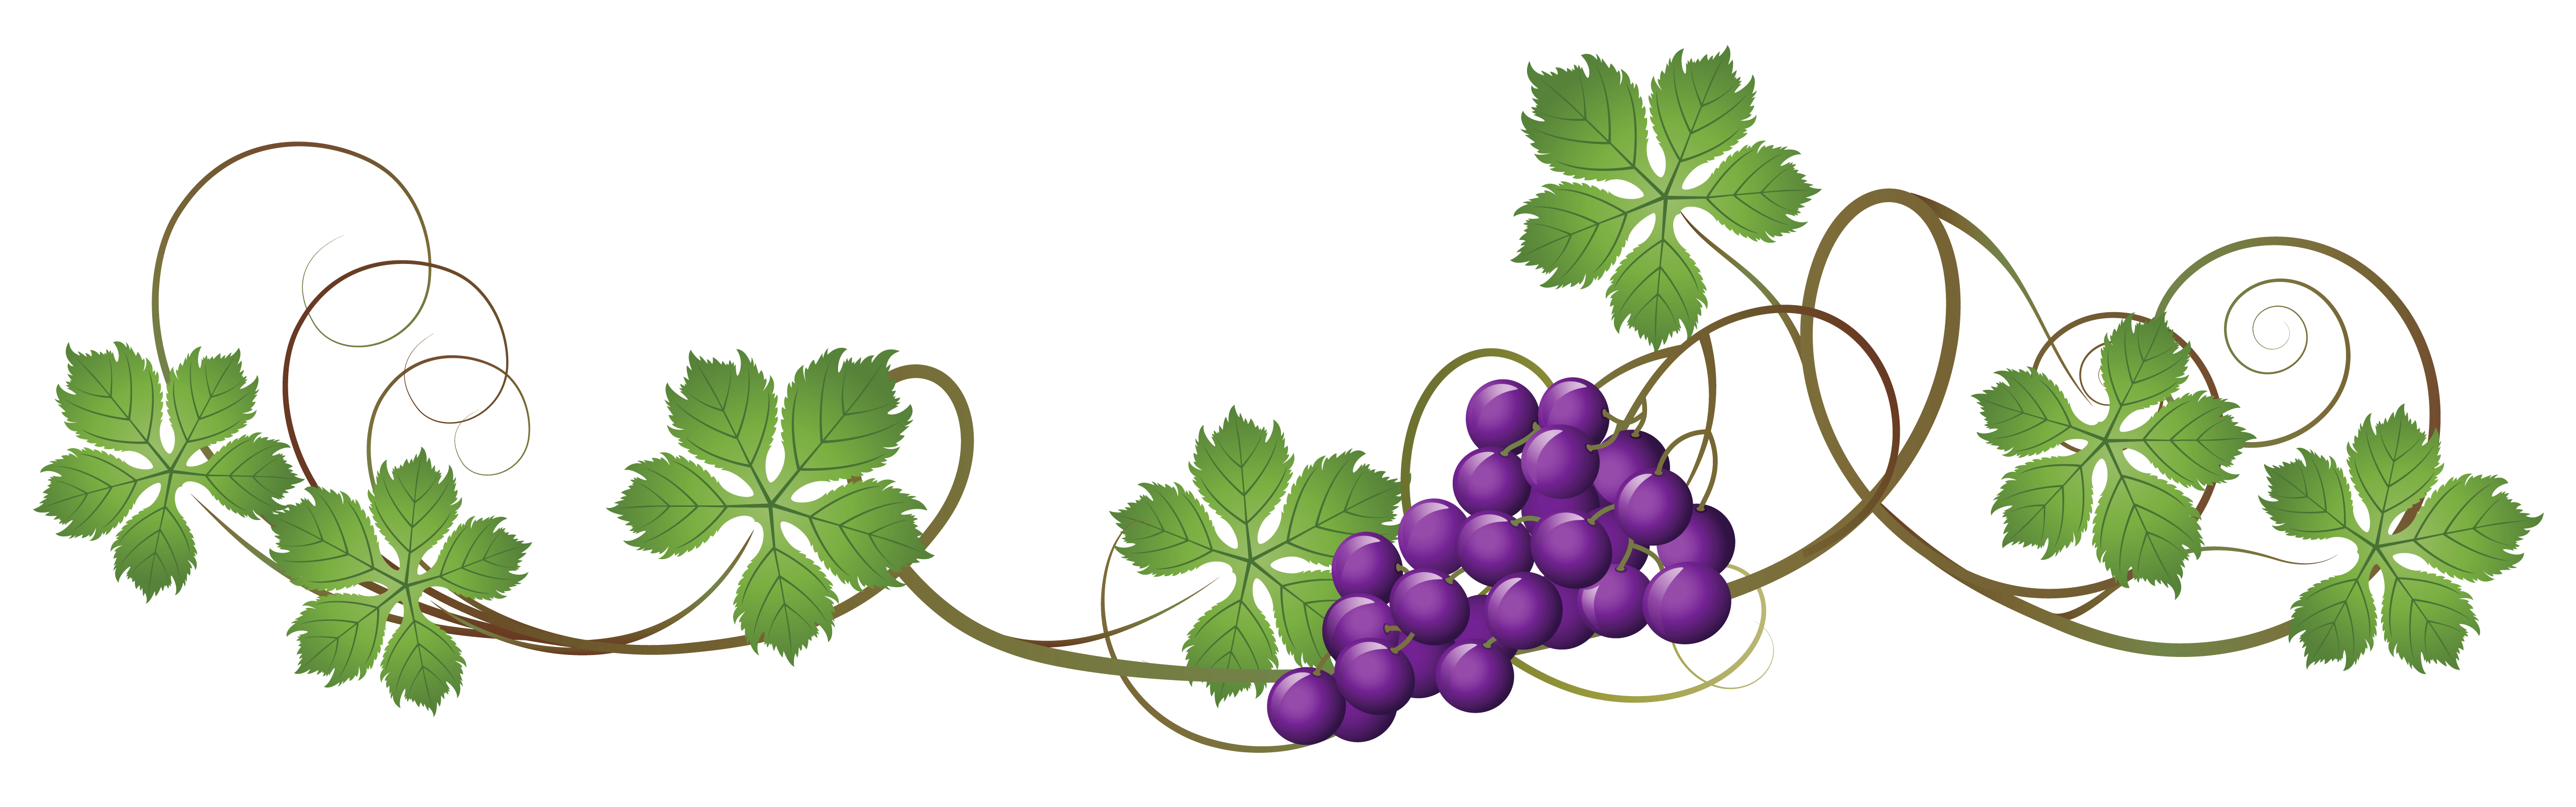 Leaves Clipart Grape Leaves Grape Transparent Free For Download On Webstockreview 2021